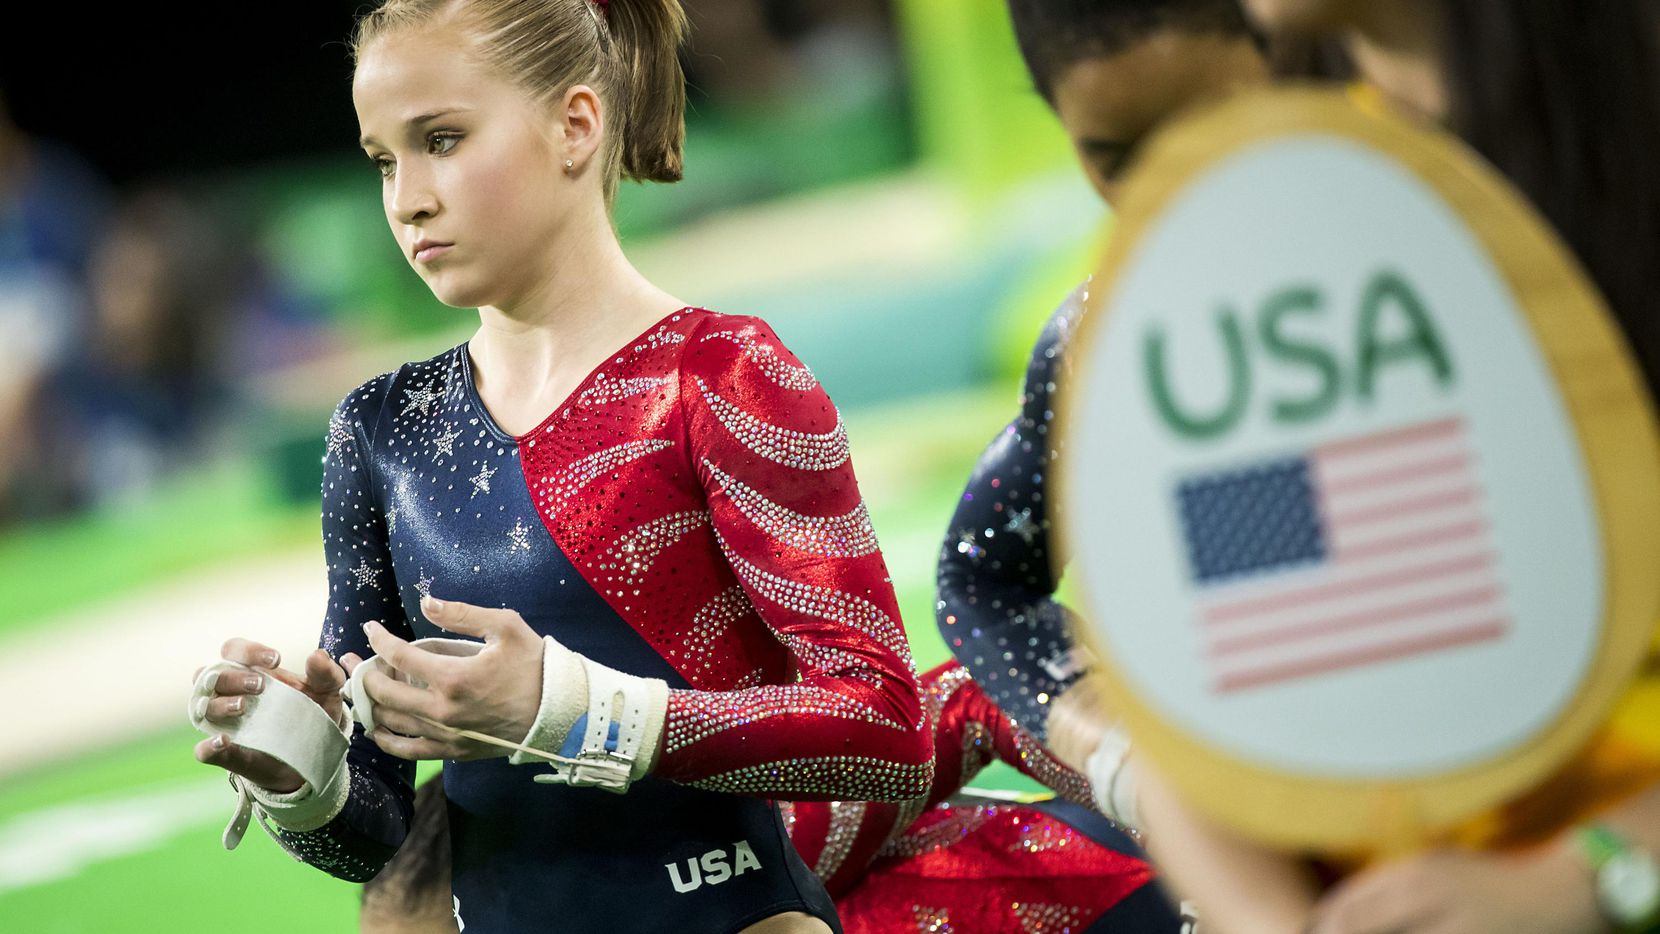 La gimnasta de Dallas, Madison Kocian, reveló que fue víctima de abuso de Larry Nassar, doctor de USA Gymnastics. (DMN/Smiley N. Pool)